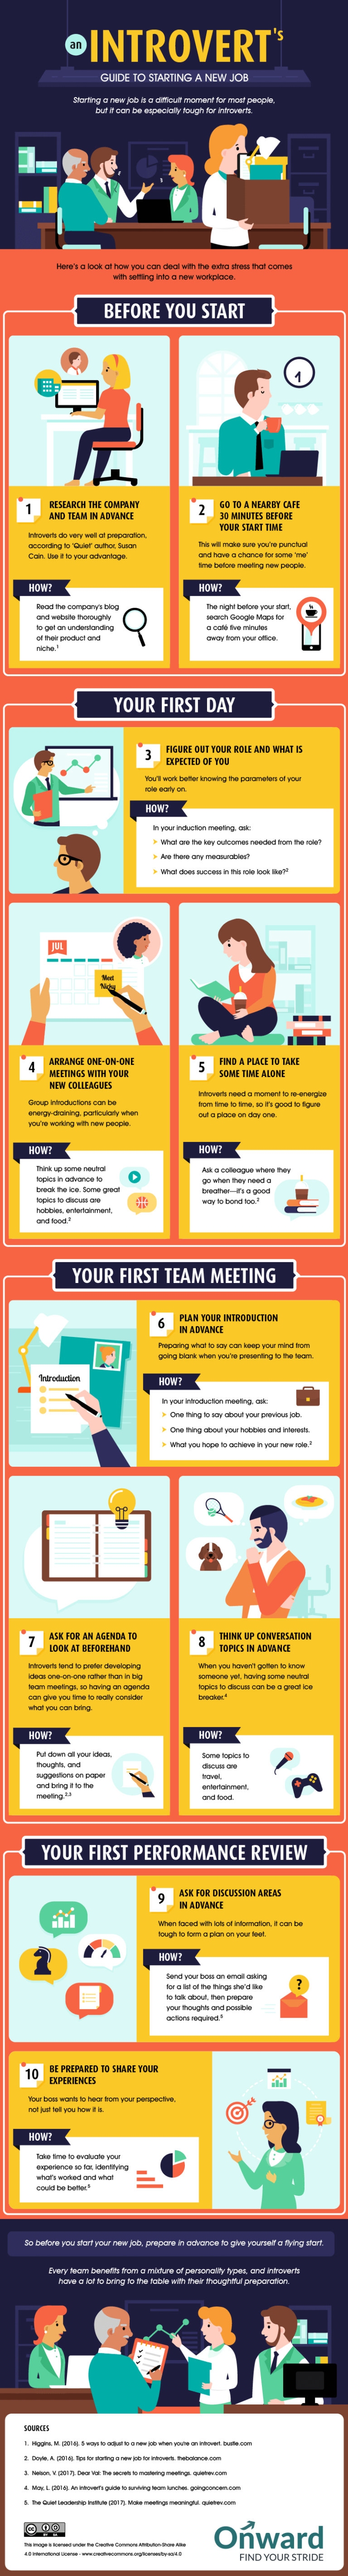 Introvert's Guide to Starting A New Job infographic